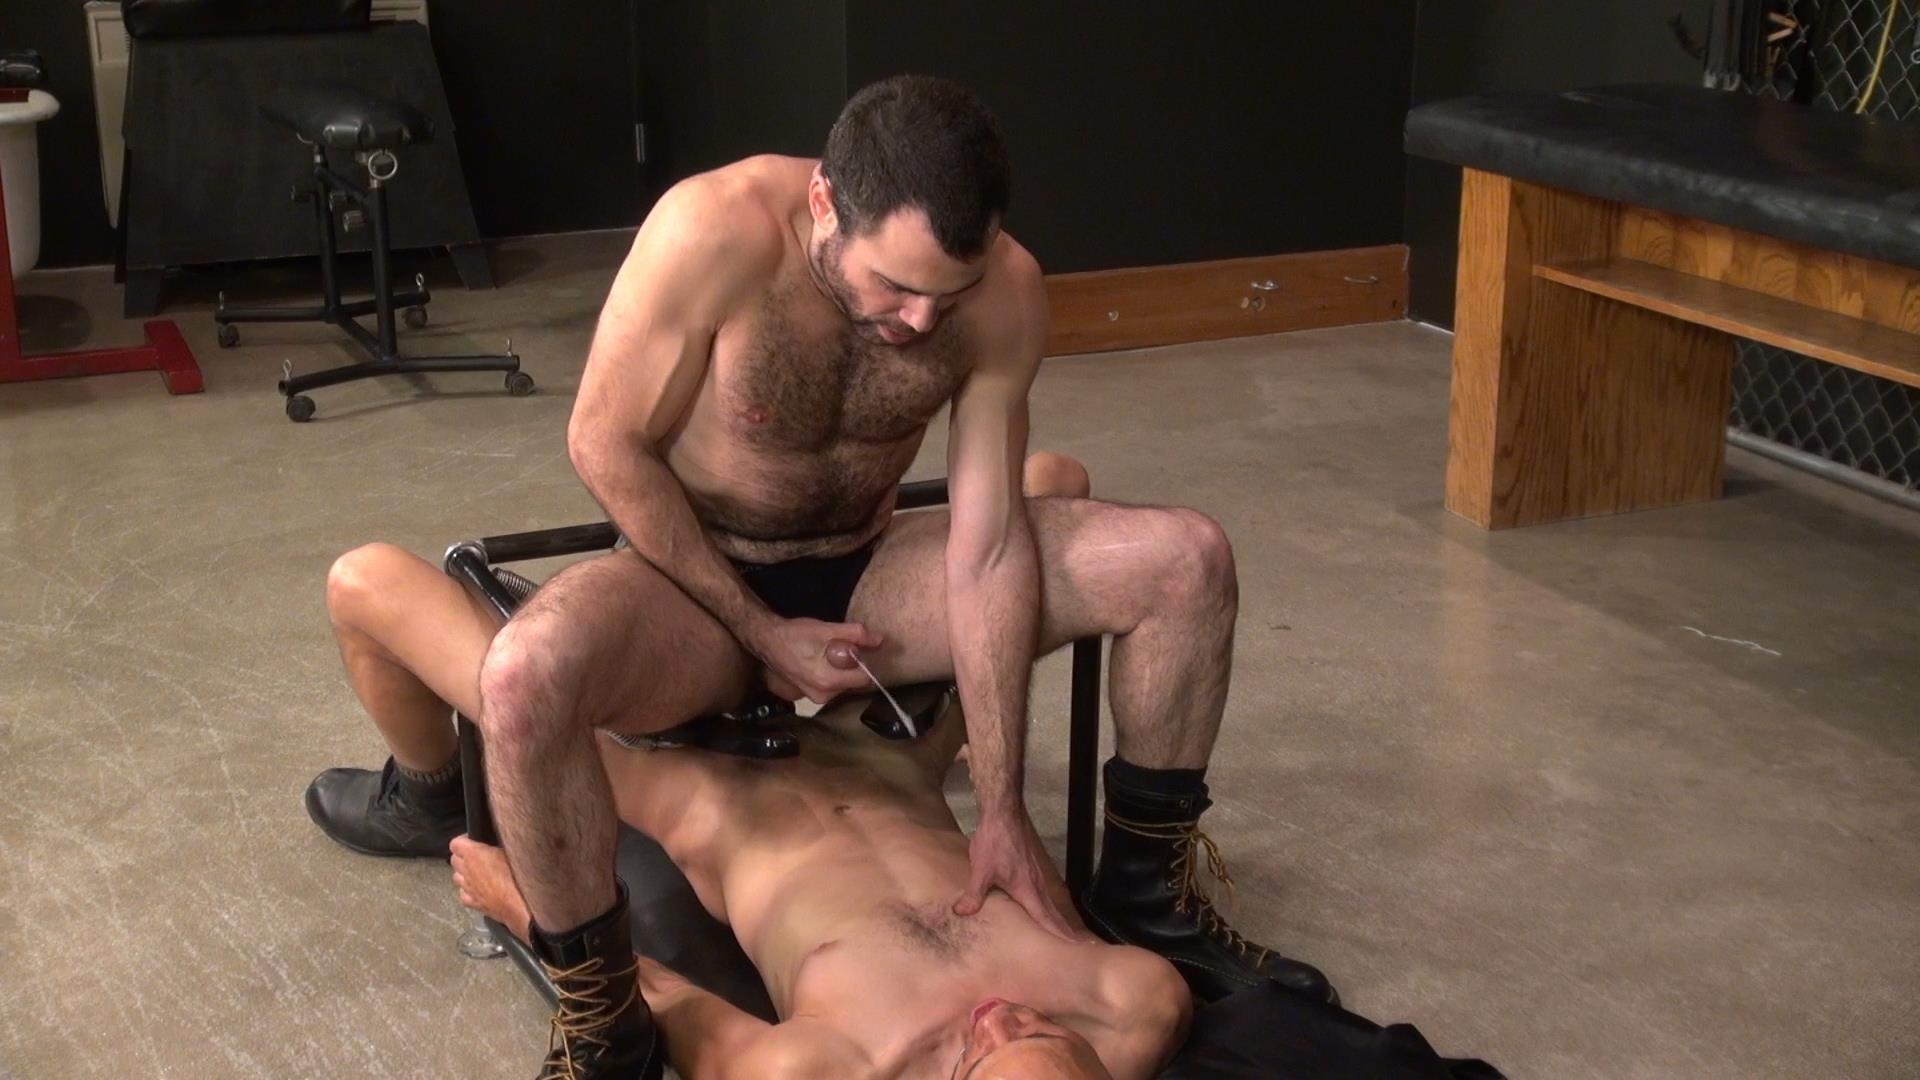 Raw and Rough Dusty Williams and Seth Patrick Barebacking A Stranger at A Sex Club Hairy Amateur Gay Porn 04